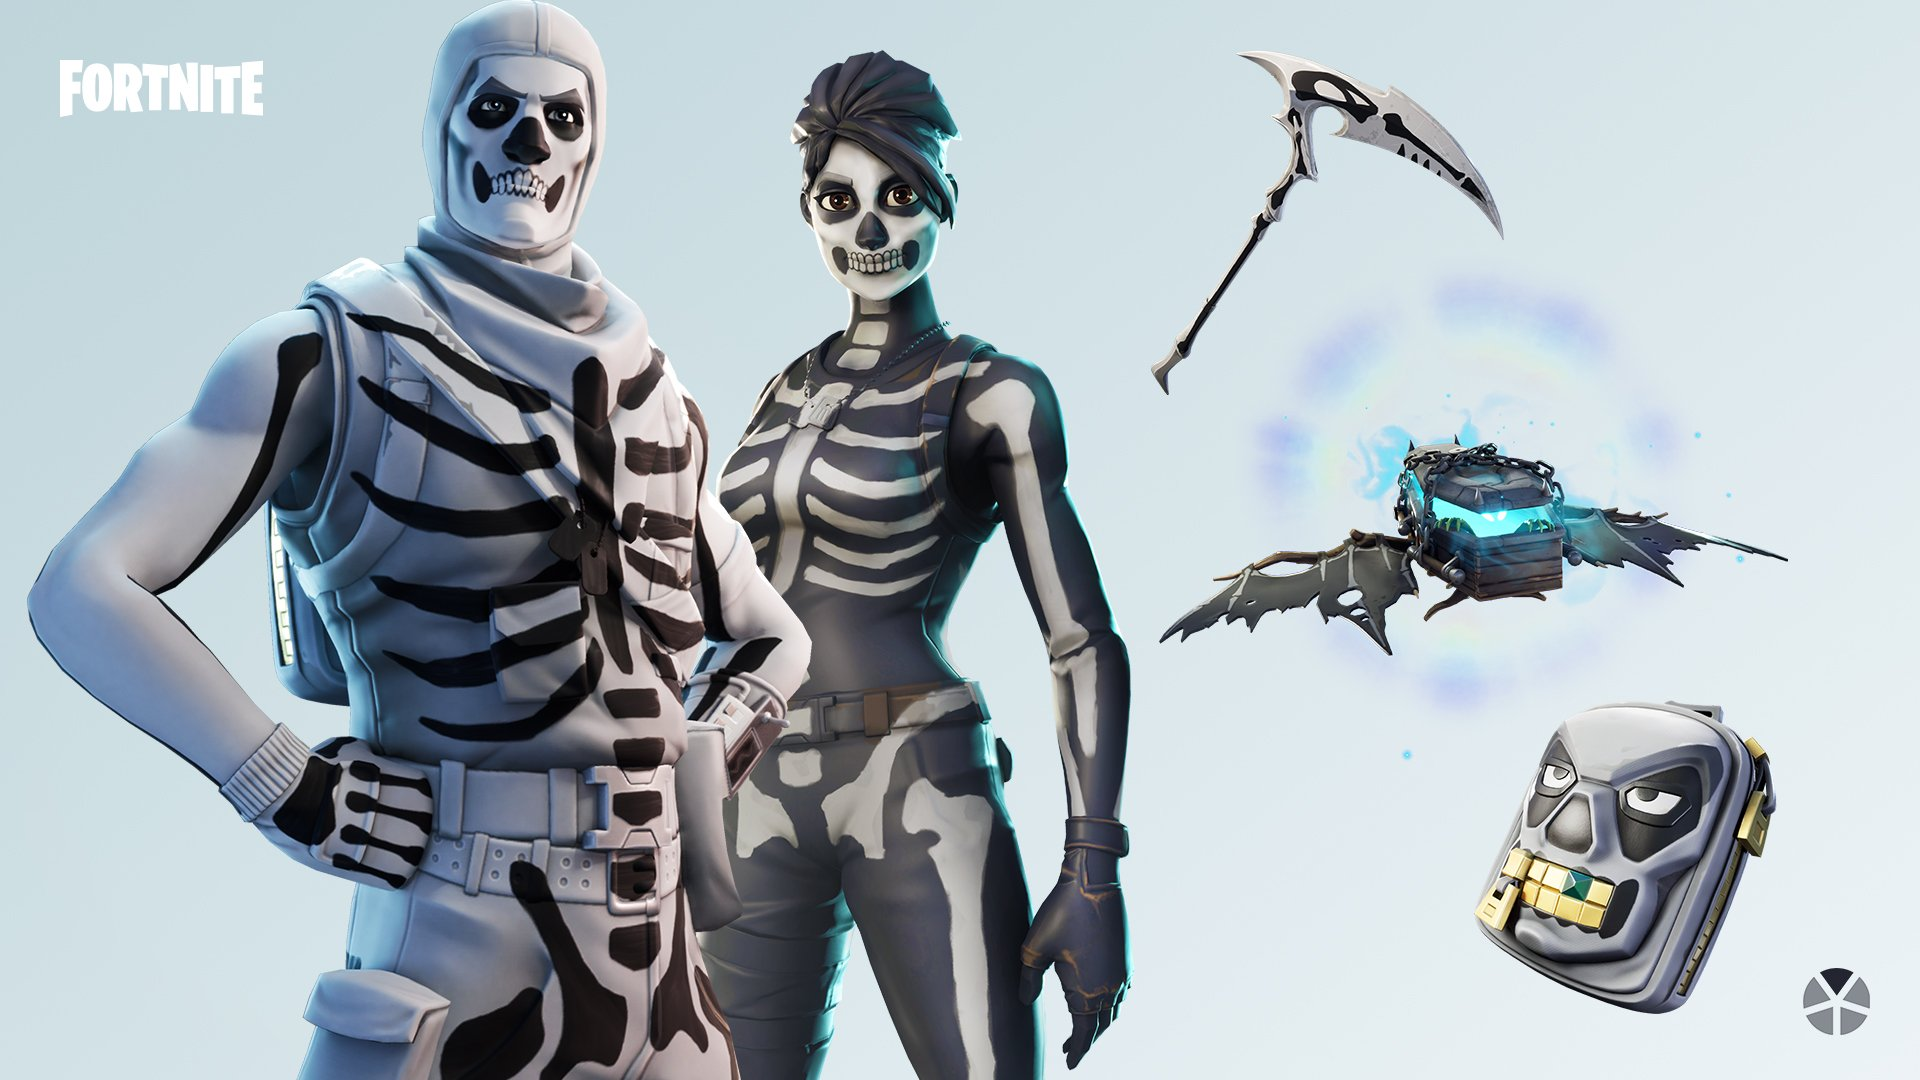 Rarest Halloween Fortnite Item Shop Skins As Of 26th October Ghoul Trooper Maintains Top Spot Fortnite Insider